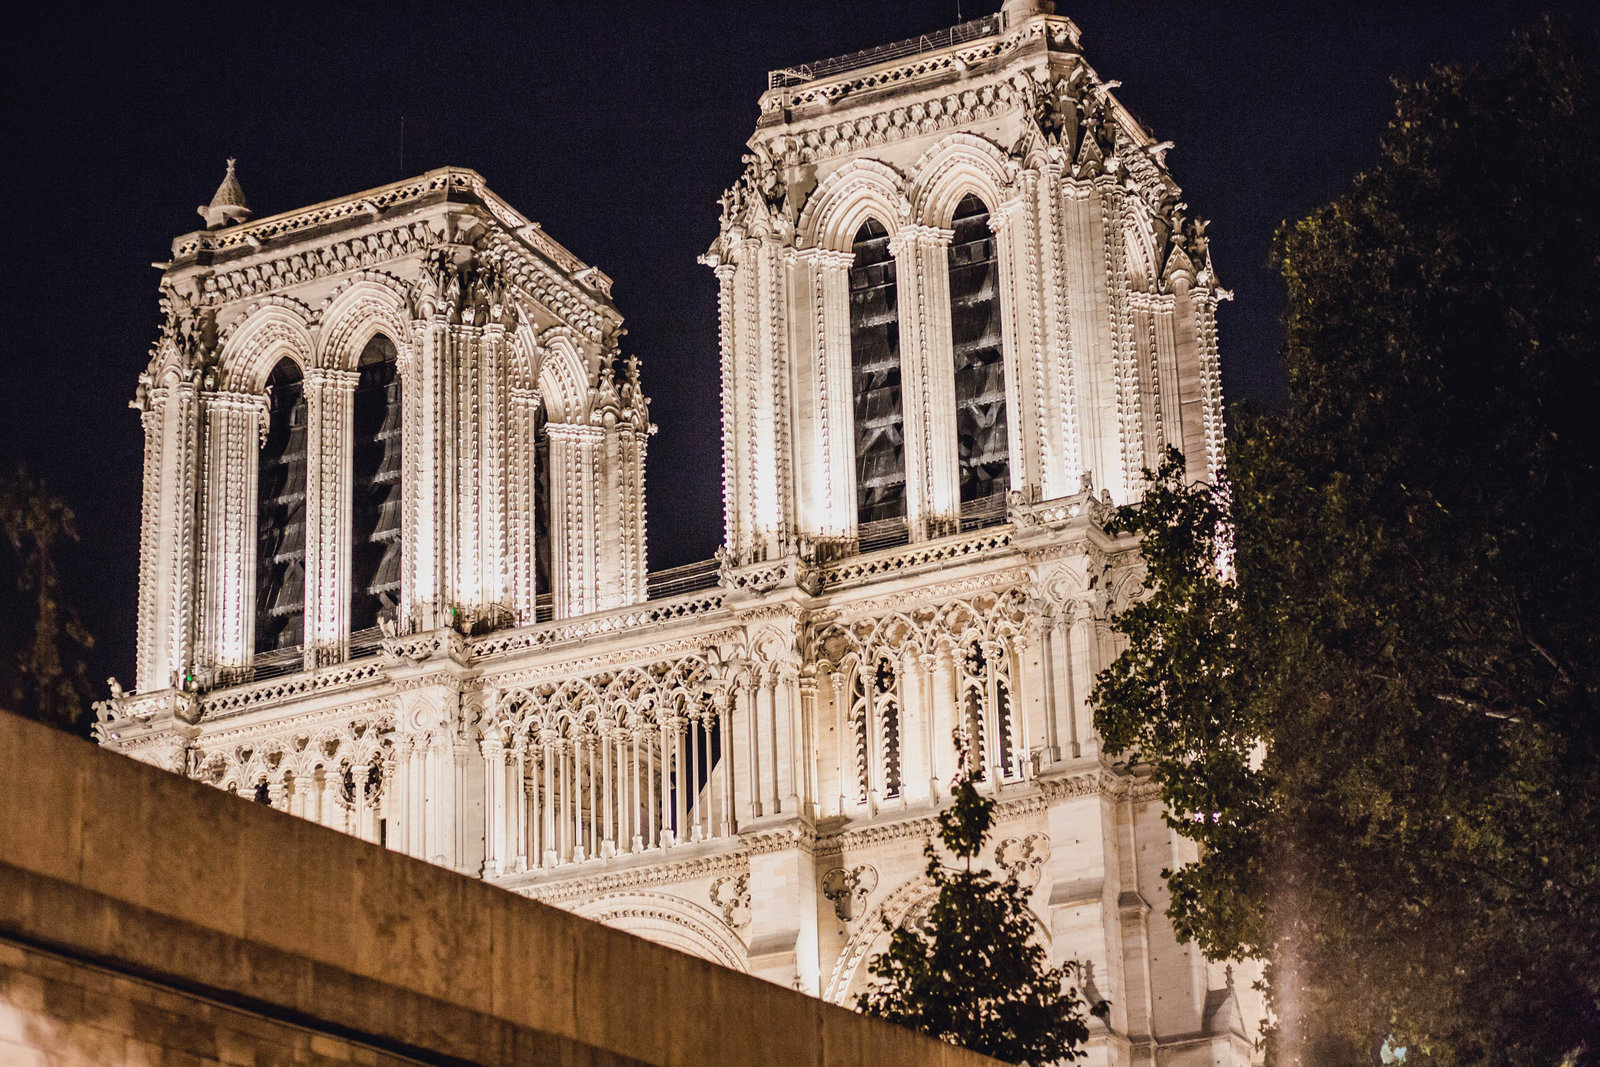 notre-dame-night-paris-france-travel-destination-wedding-kate-timbers-photography-1839